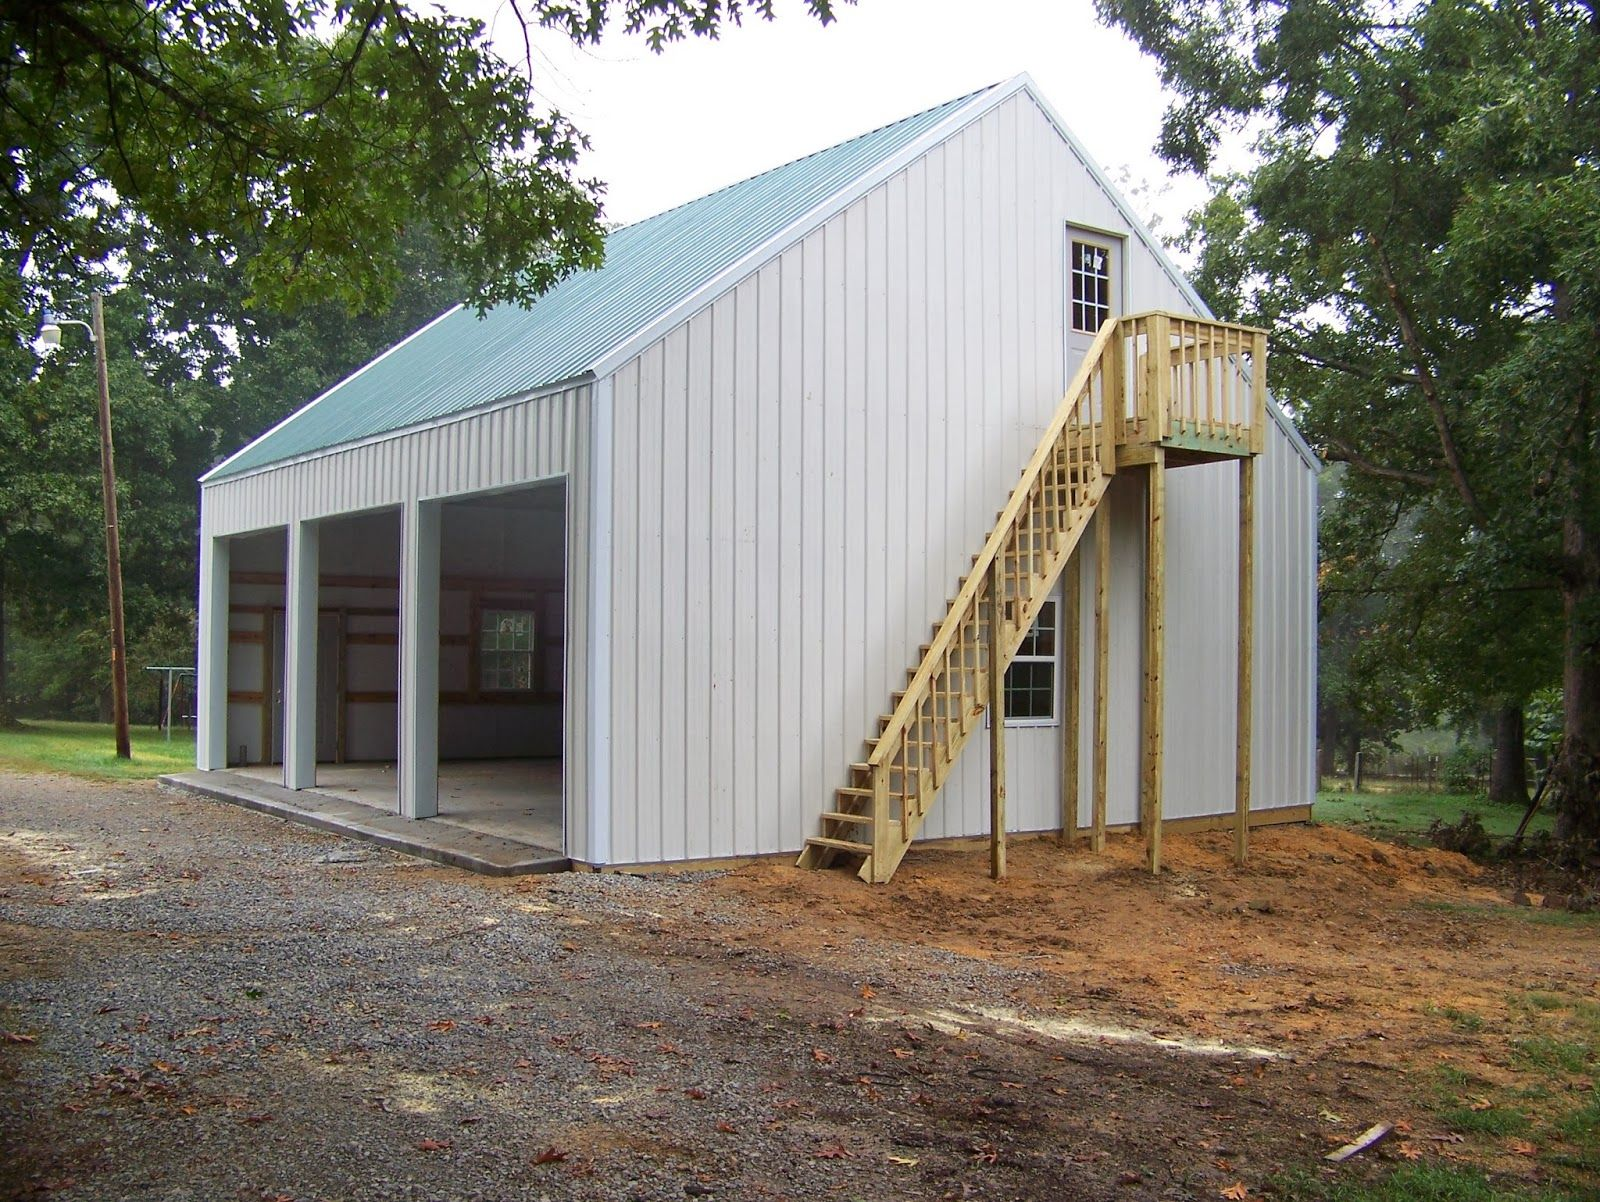 Garage Builders Okc Steel Building With Loft This Is A 3 Car 30x36 Garage With An